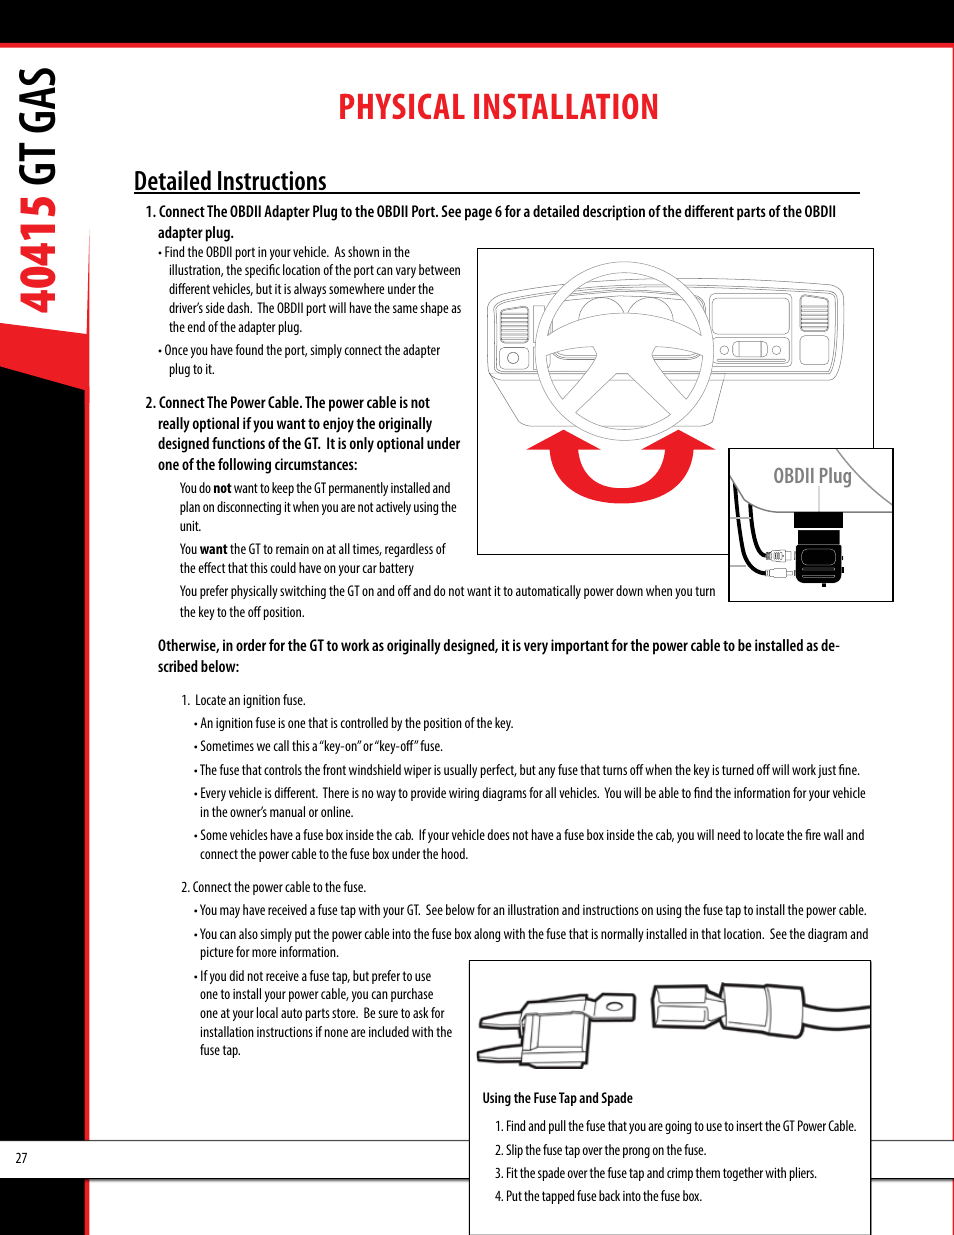 Physical installation, Obdii adapter plug installation diagram, Detailed  instructions | Bully Dog 40415 gauge GT Gas tuner User Manual | Page 28 / 51